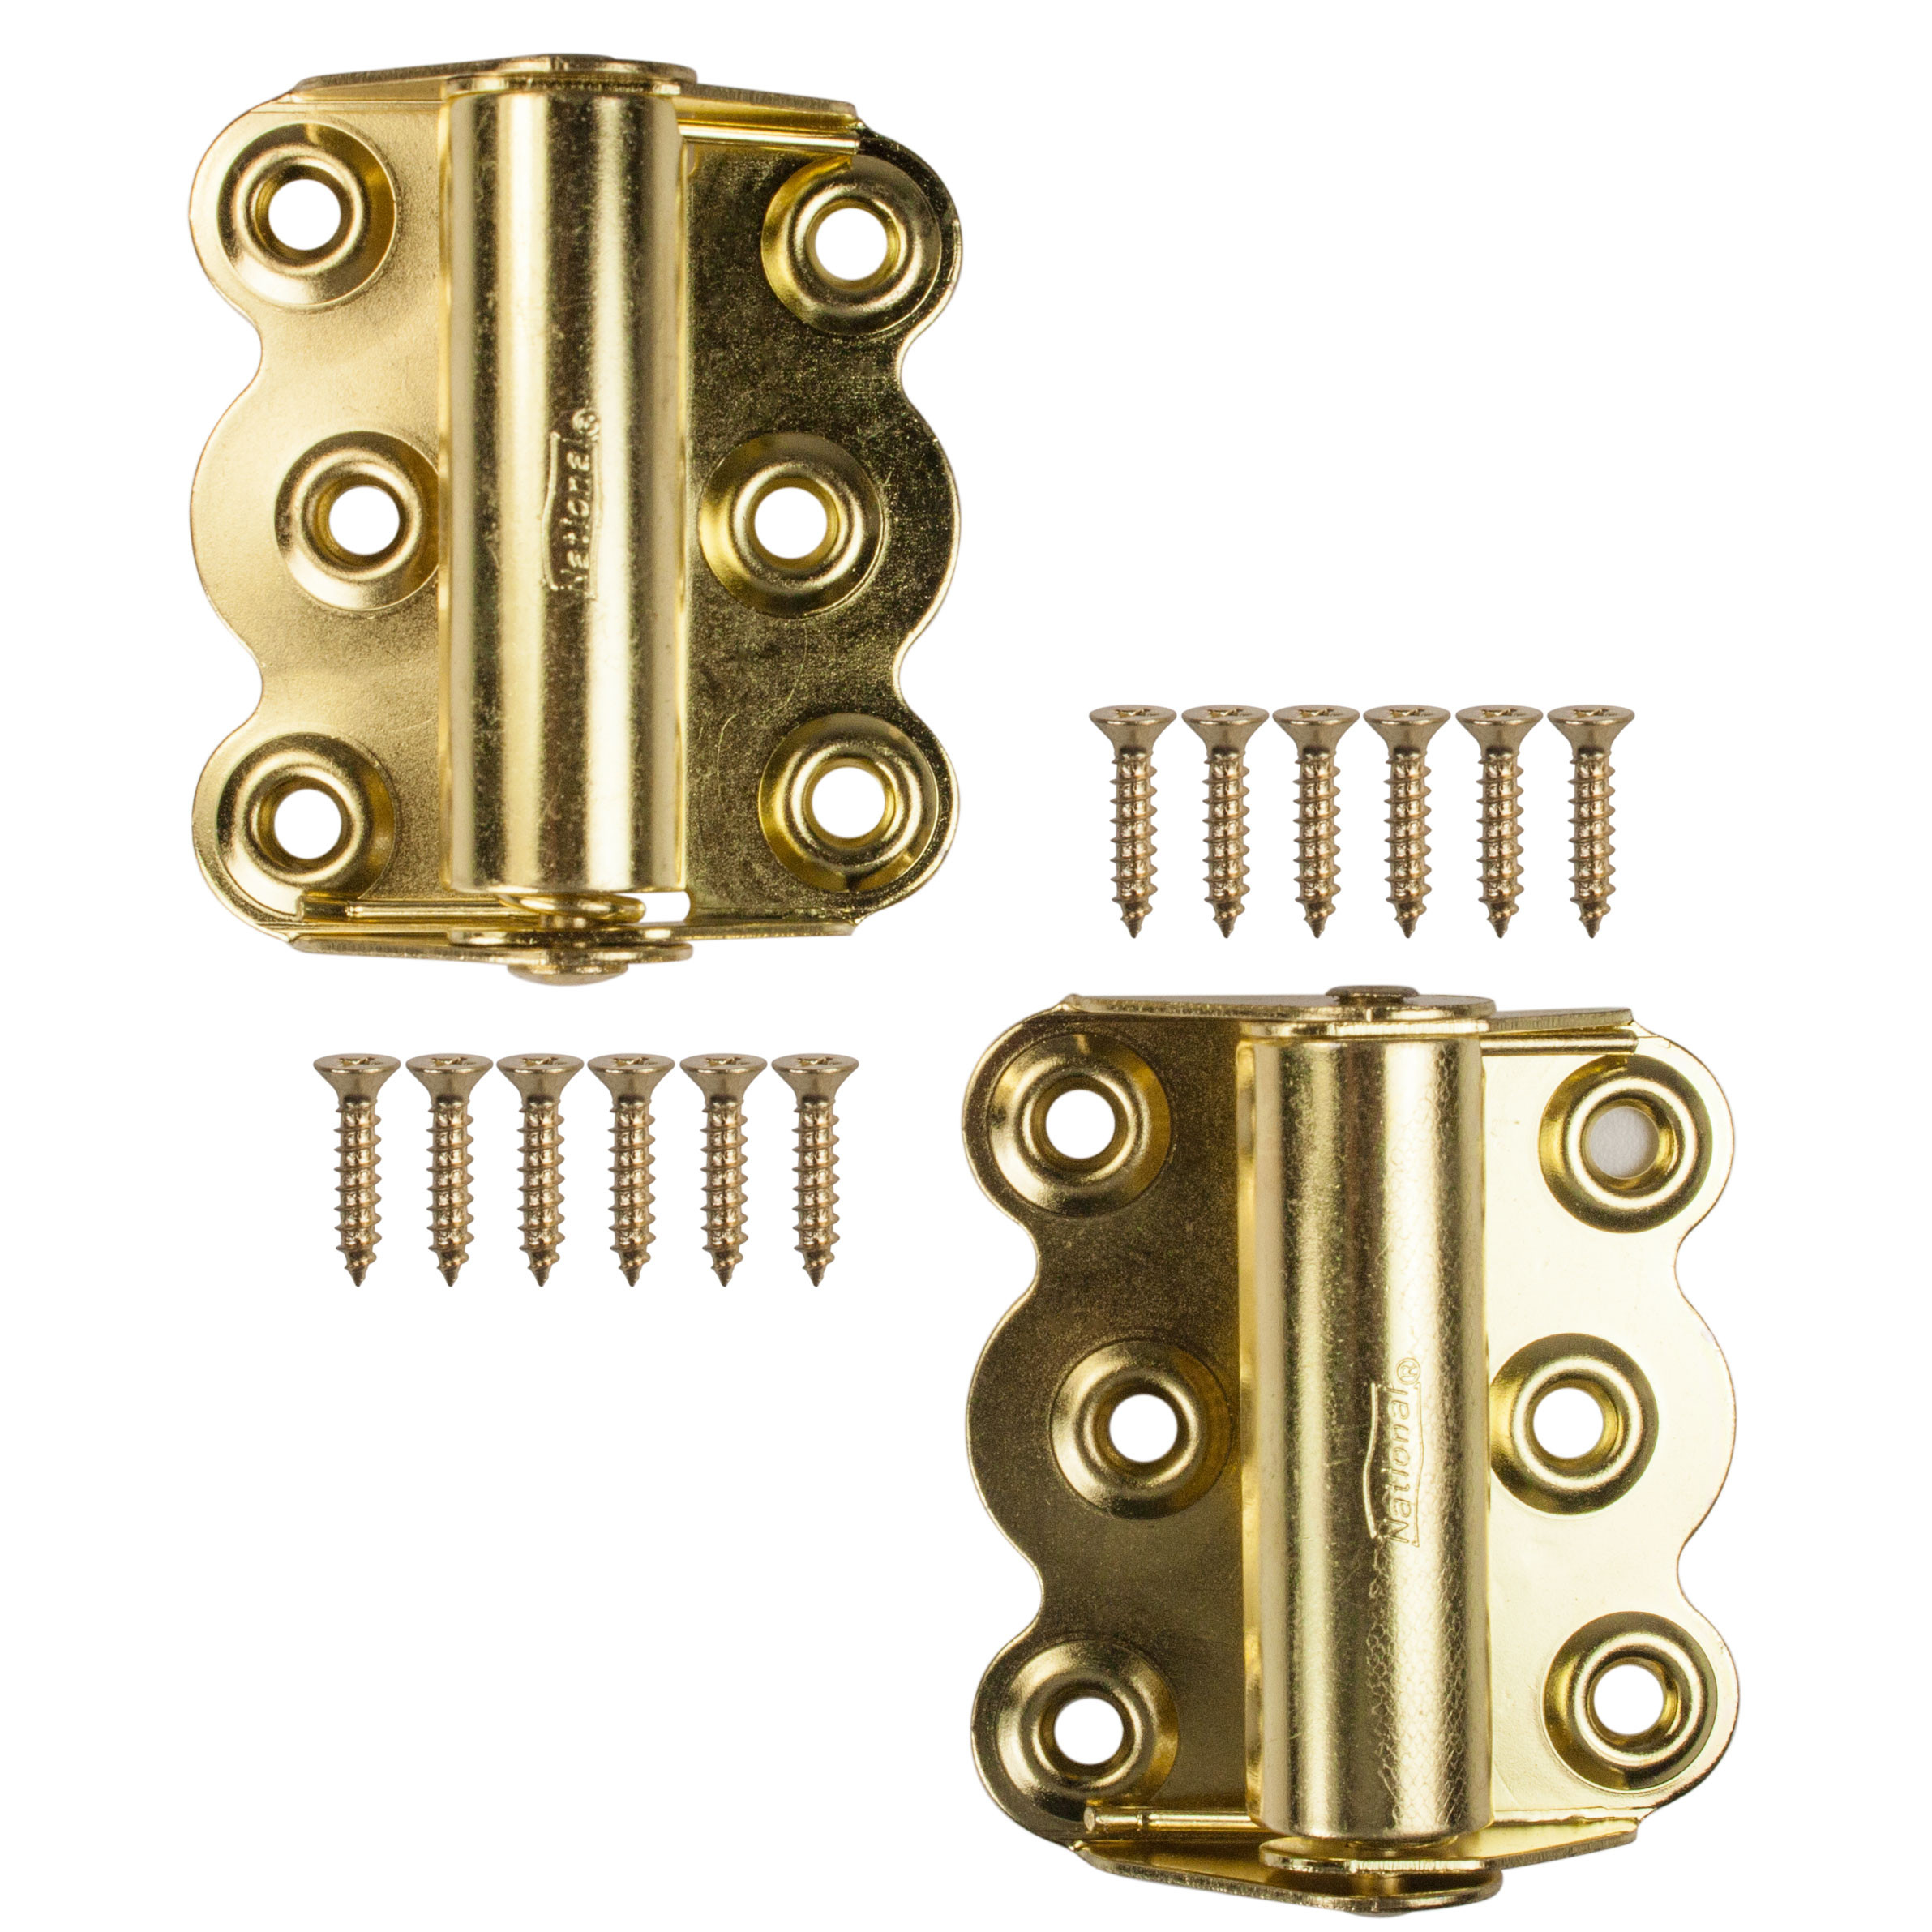 2 pack National Hardware N190-736 V122 Spring Hinges in Zinc plated